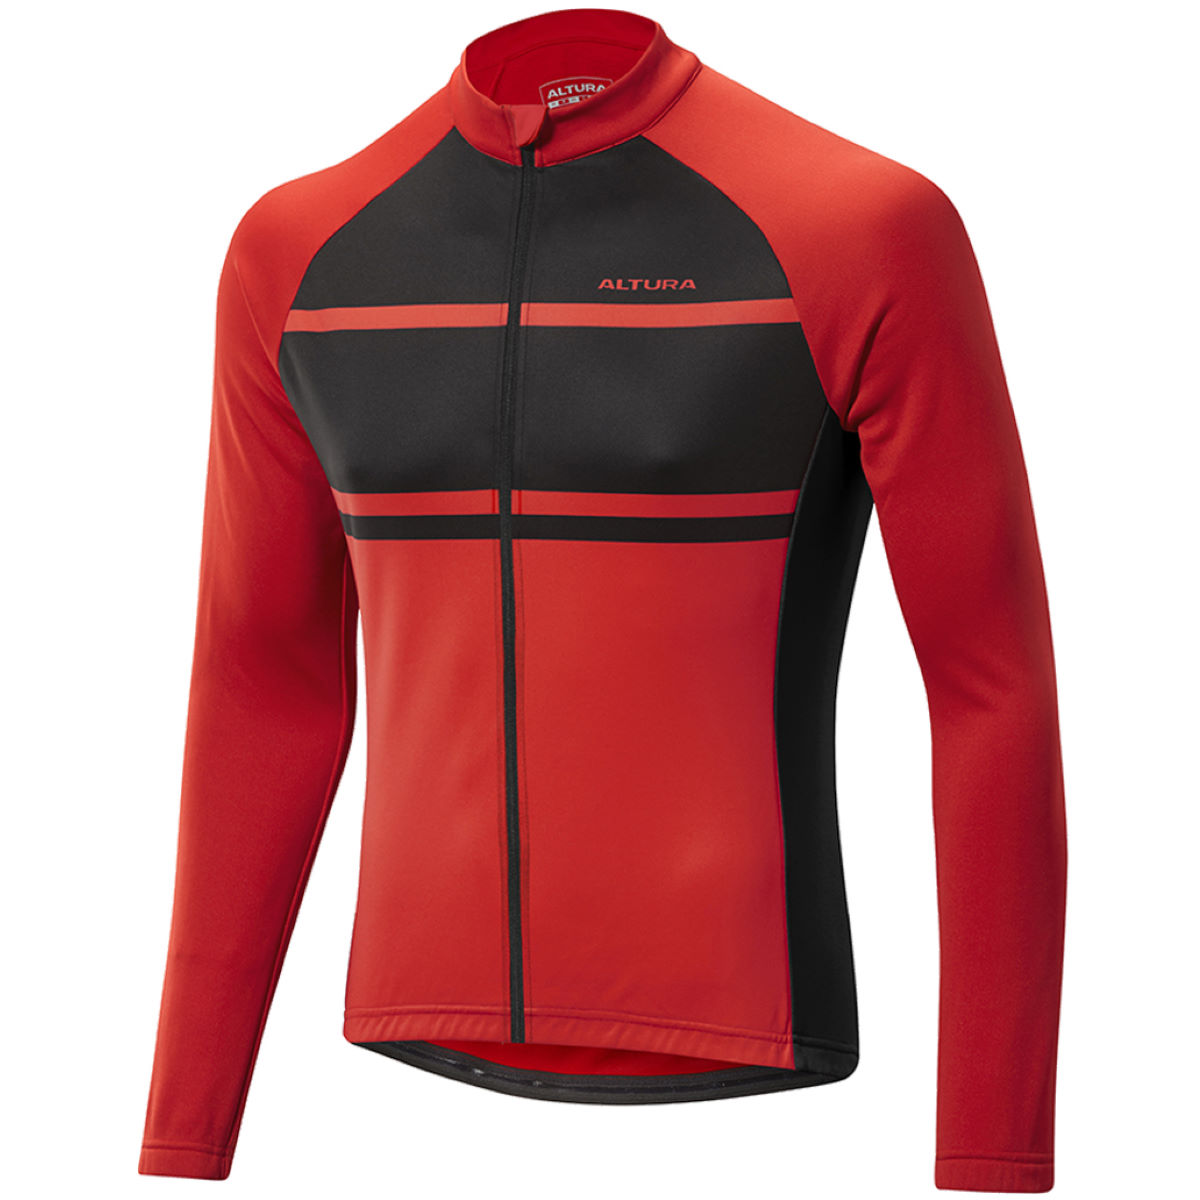 Maillot cycliste Altura Airstream (manches longues) - XL Rouge/Noir